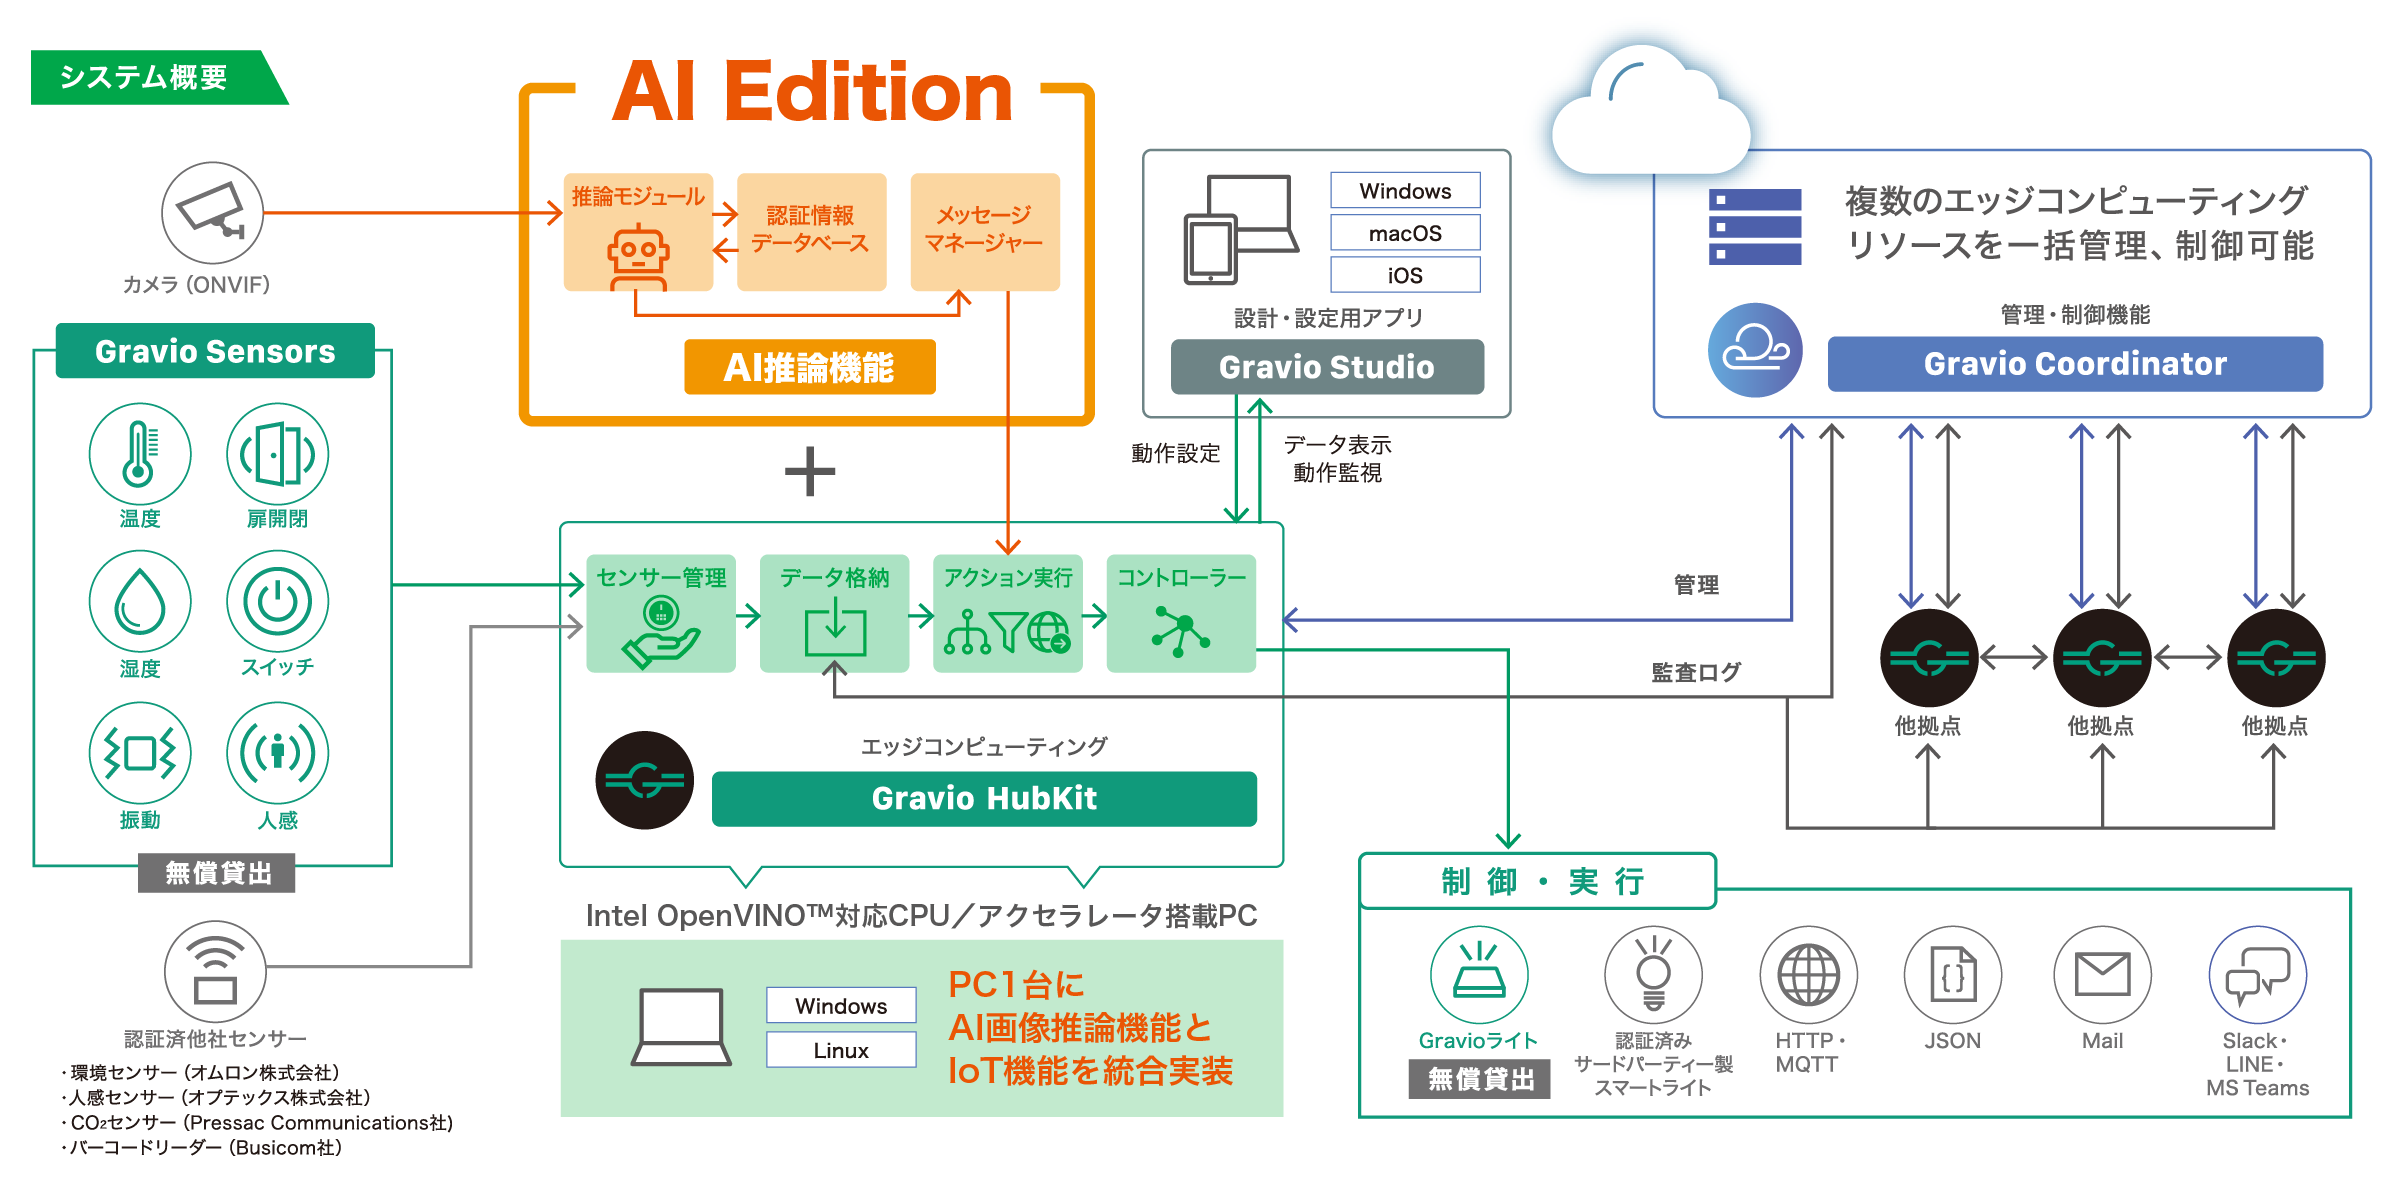 AI 画像推論機能を搭載